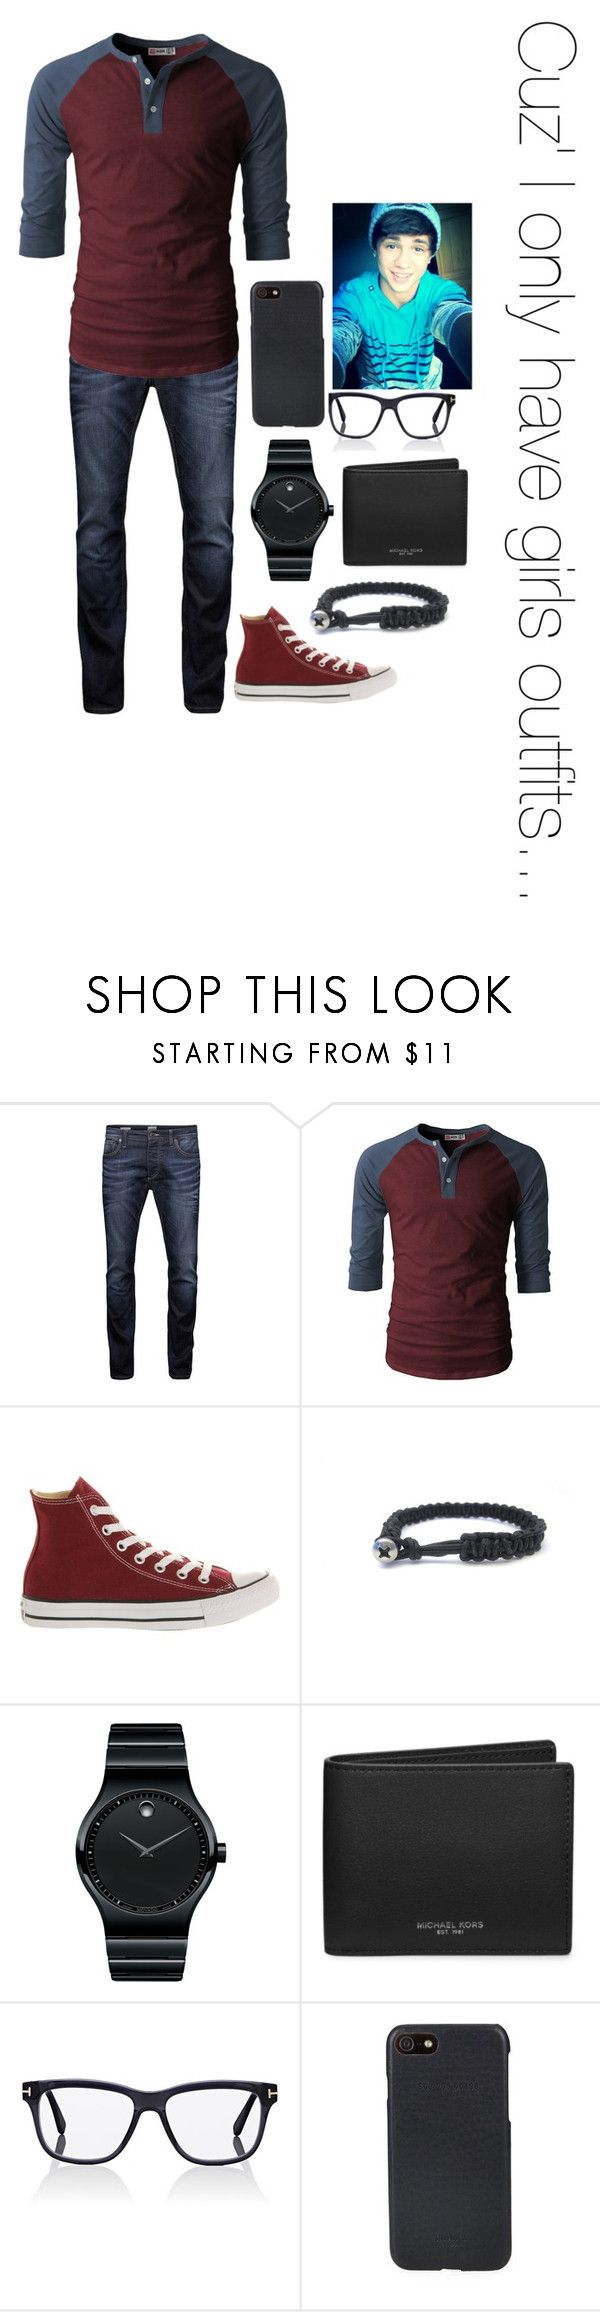 """""""Cuz' I only have girls outfits..."""" by summerdawn509 ❤ liked on Polyvore featuring Jack & Jones, Converse, xO Design, Movado, Michael Kors, Tom Ford, Shinola, men's fashion and menswear"""